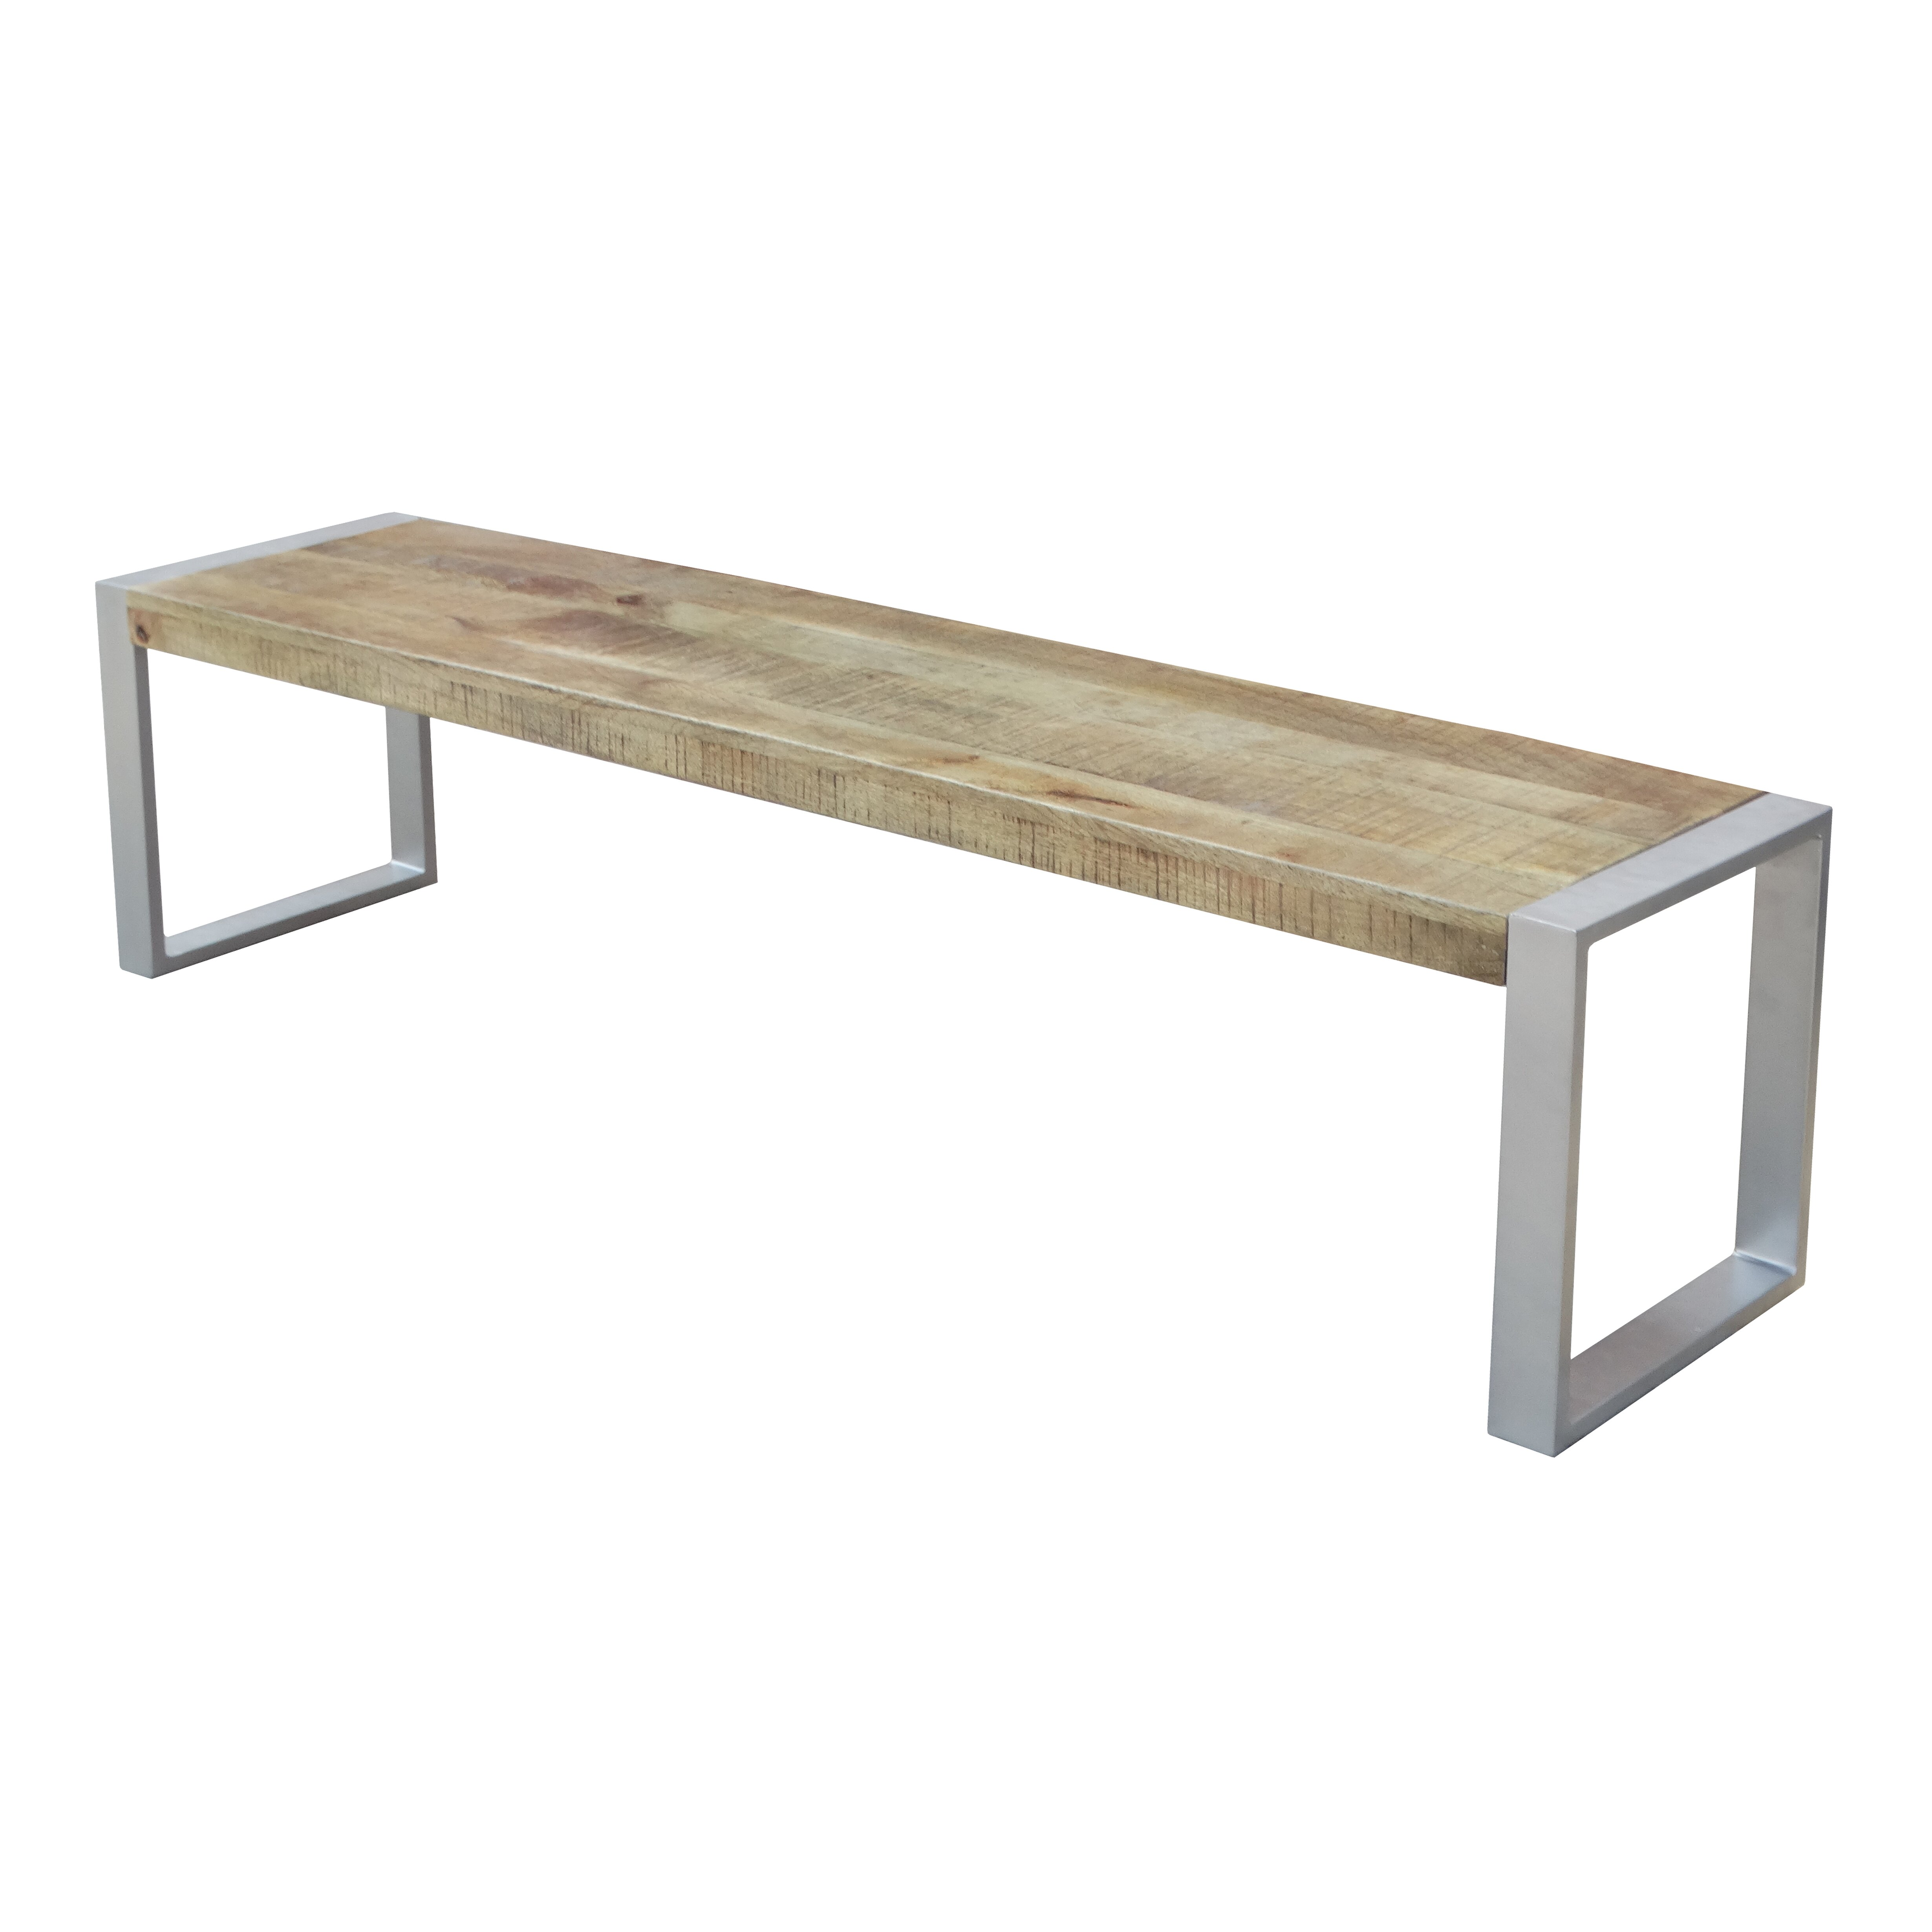 Timbergirl Wood Kitchen Bench & Reviews